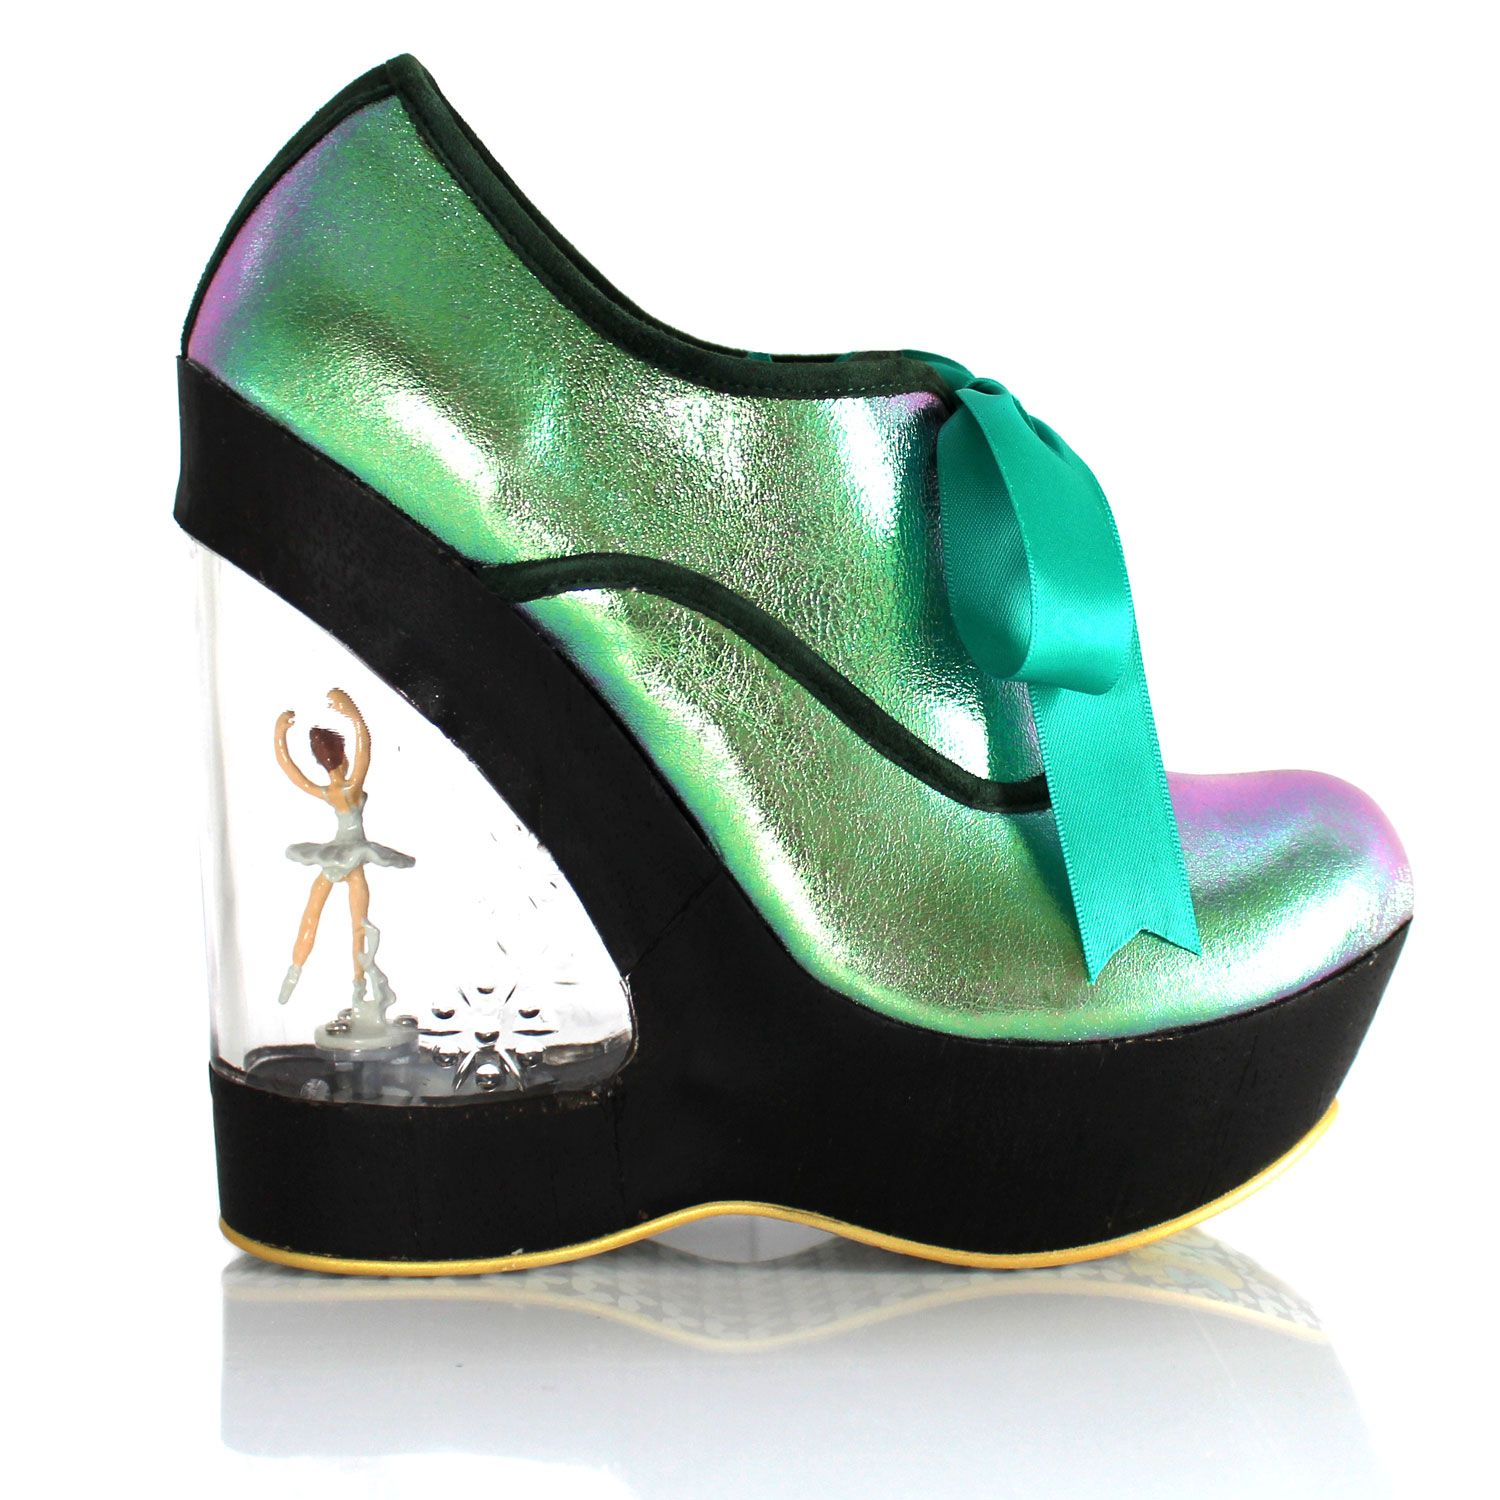 Ballet Heel Shoes take shoe fetishes to a whole new level. Seen on celebrities, in music videos and movies, these shoes will make you--or your partner--melt. High Heel Ballet Shoes on SALE now!